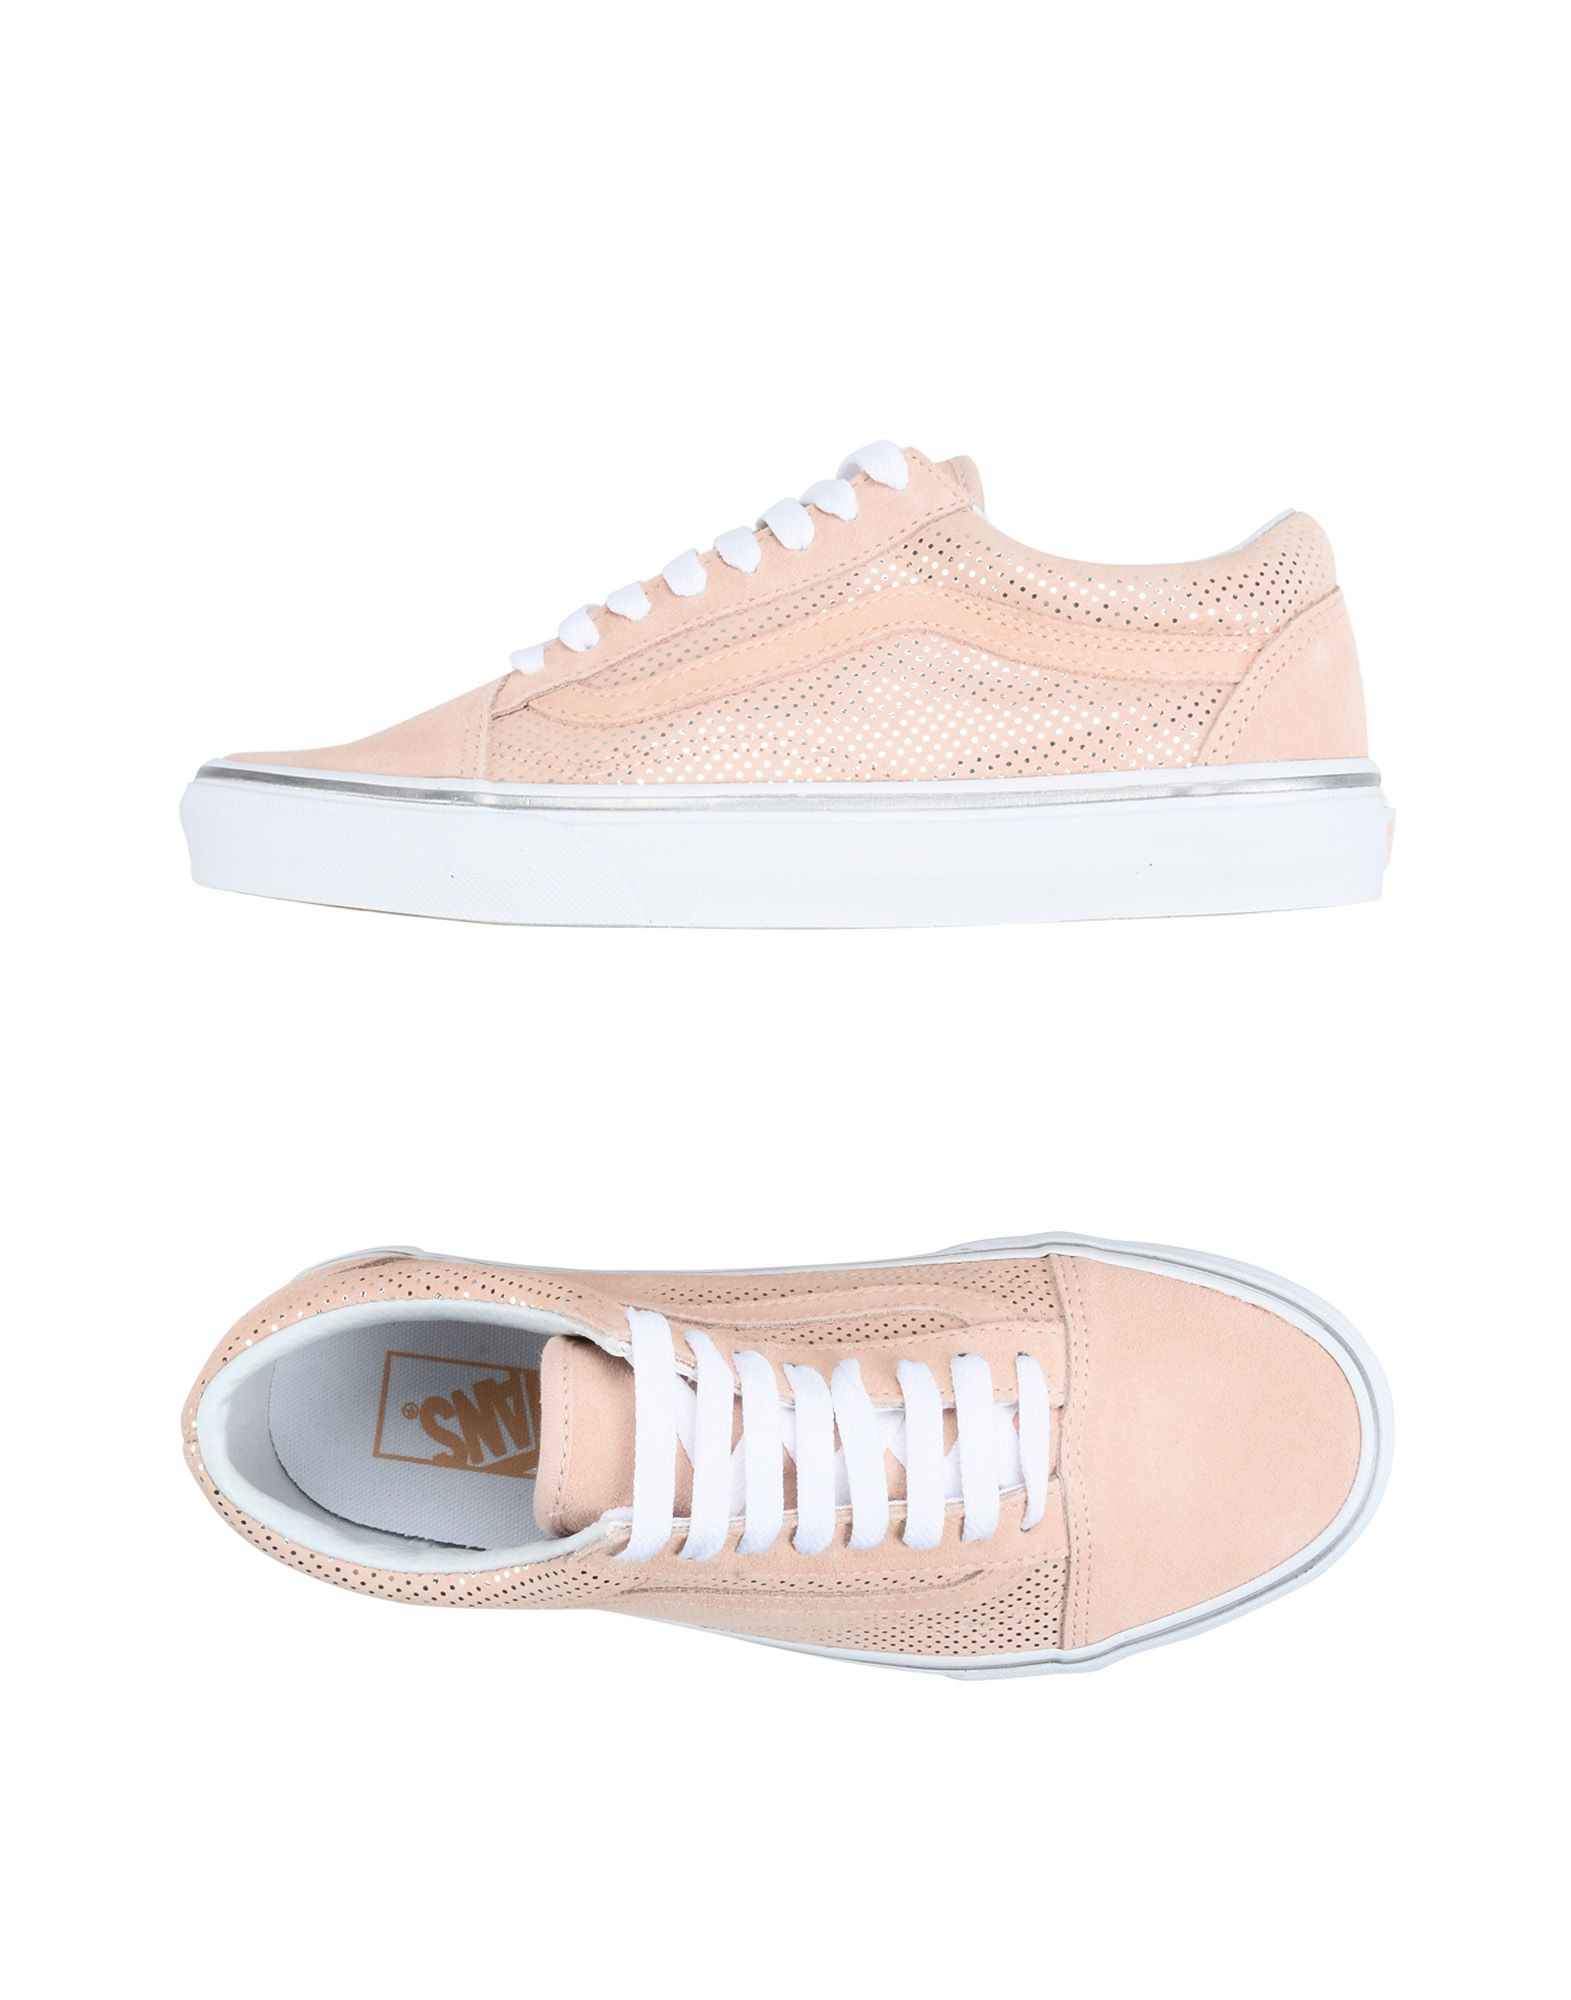 Sneakers Vans Ua Old Skool - Metallic Dots - Femme - Sneakers Vans sur